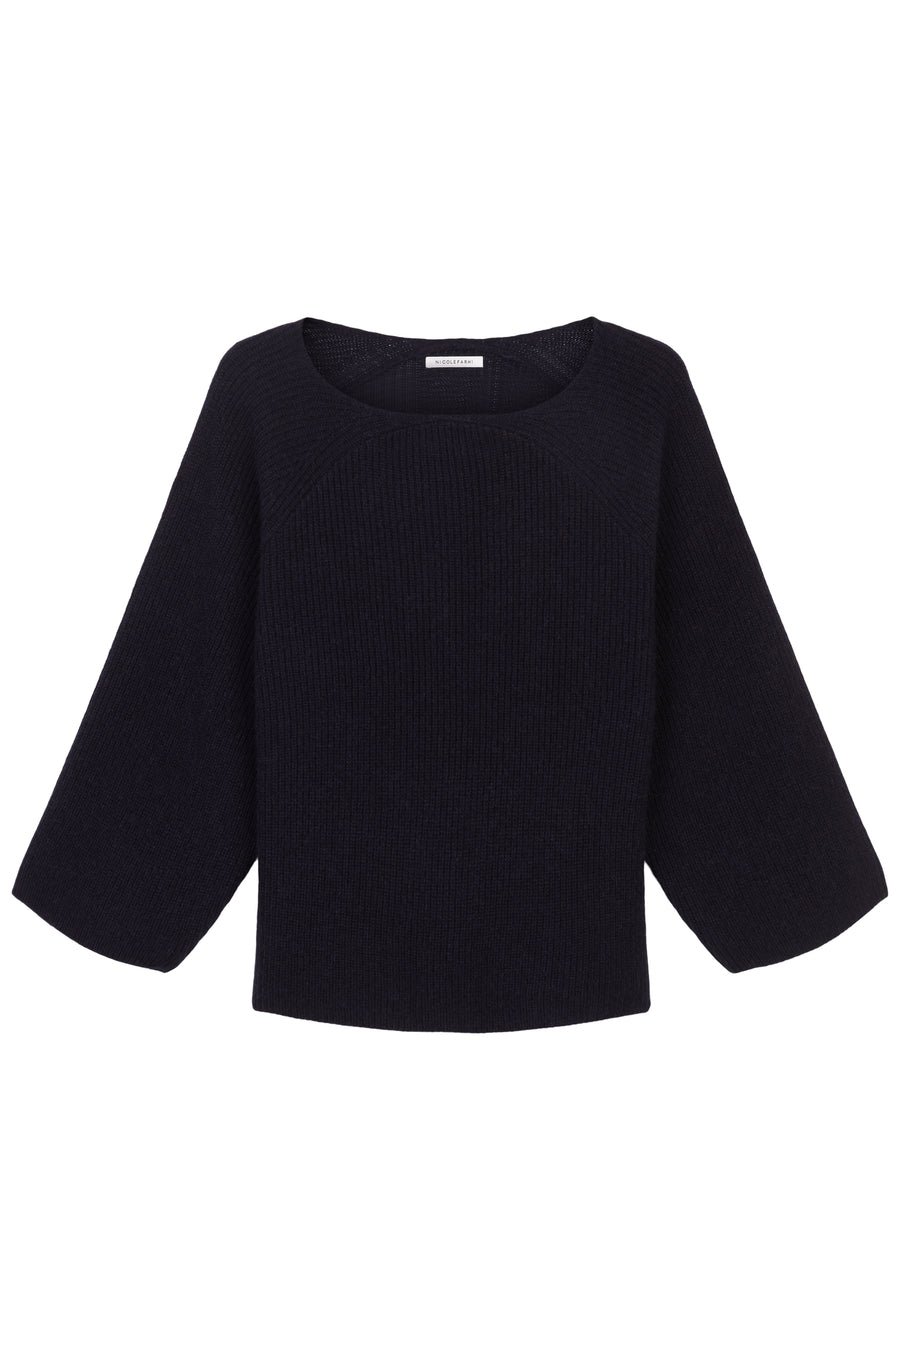 Ink Sanna Wool Rib V-Neck Jumper